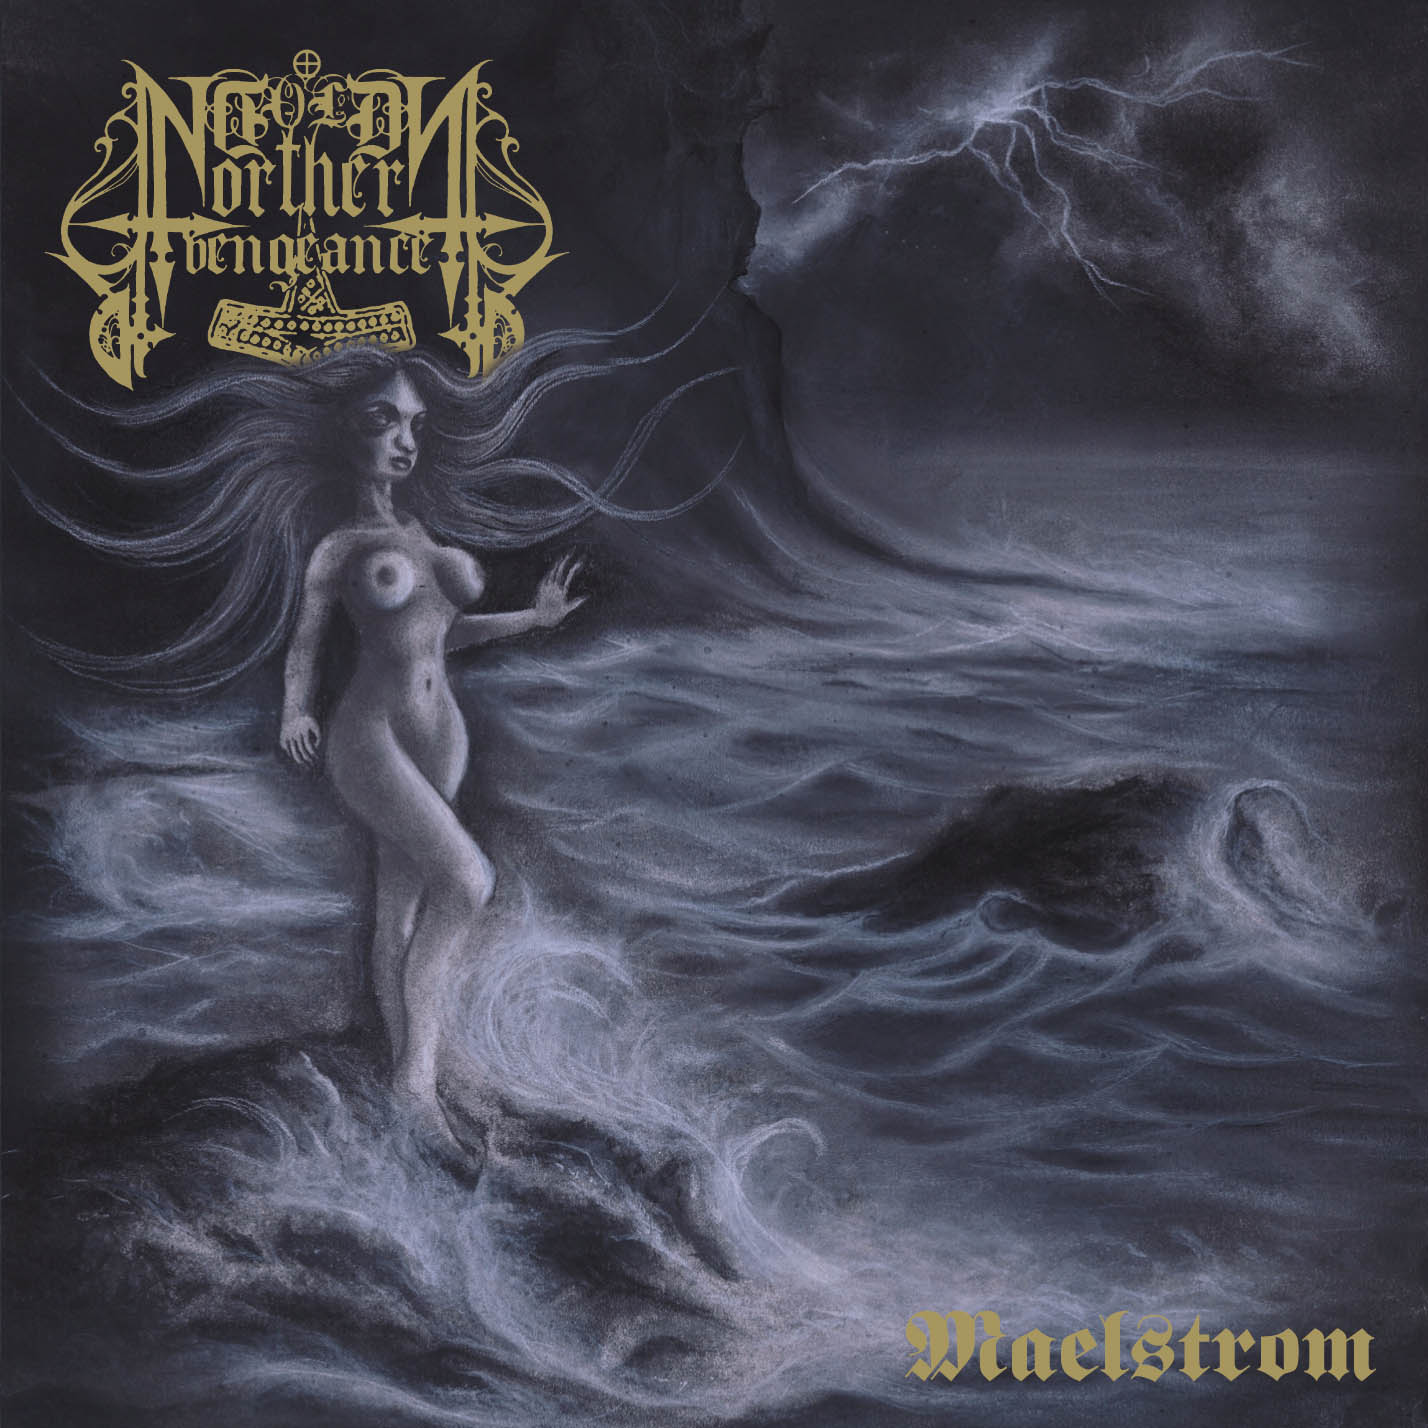 Cold Northern Vengeance – Maelstrom Review